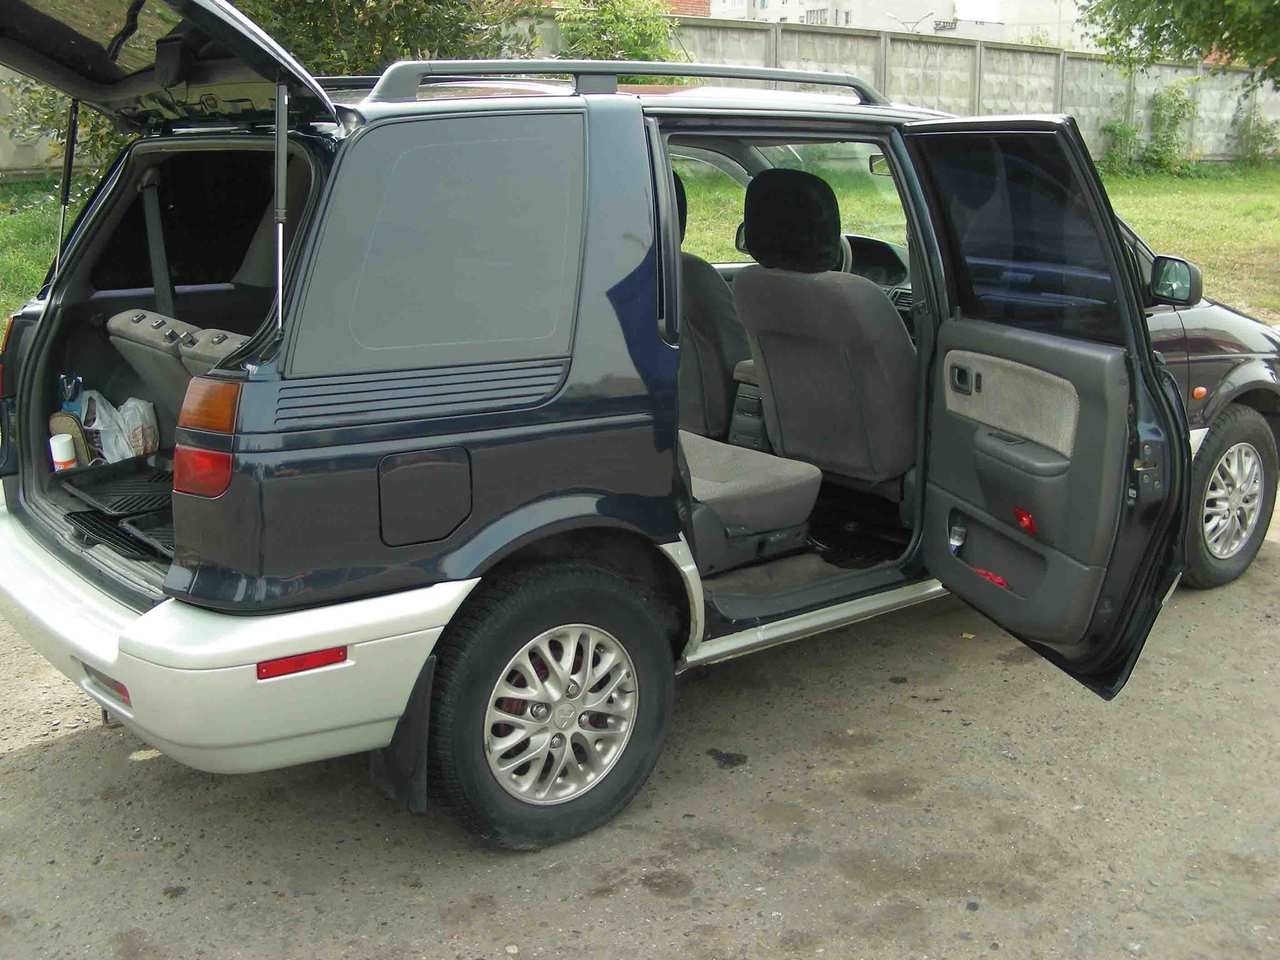 1997 mitsubishi space wagon photos gasoline manual for sale. Black Bedroom Furniture Sets. Home Design Ideas